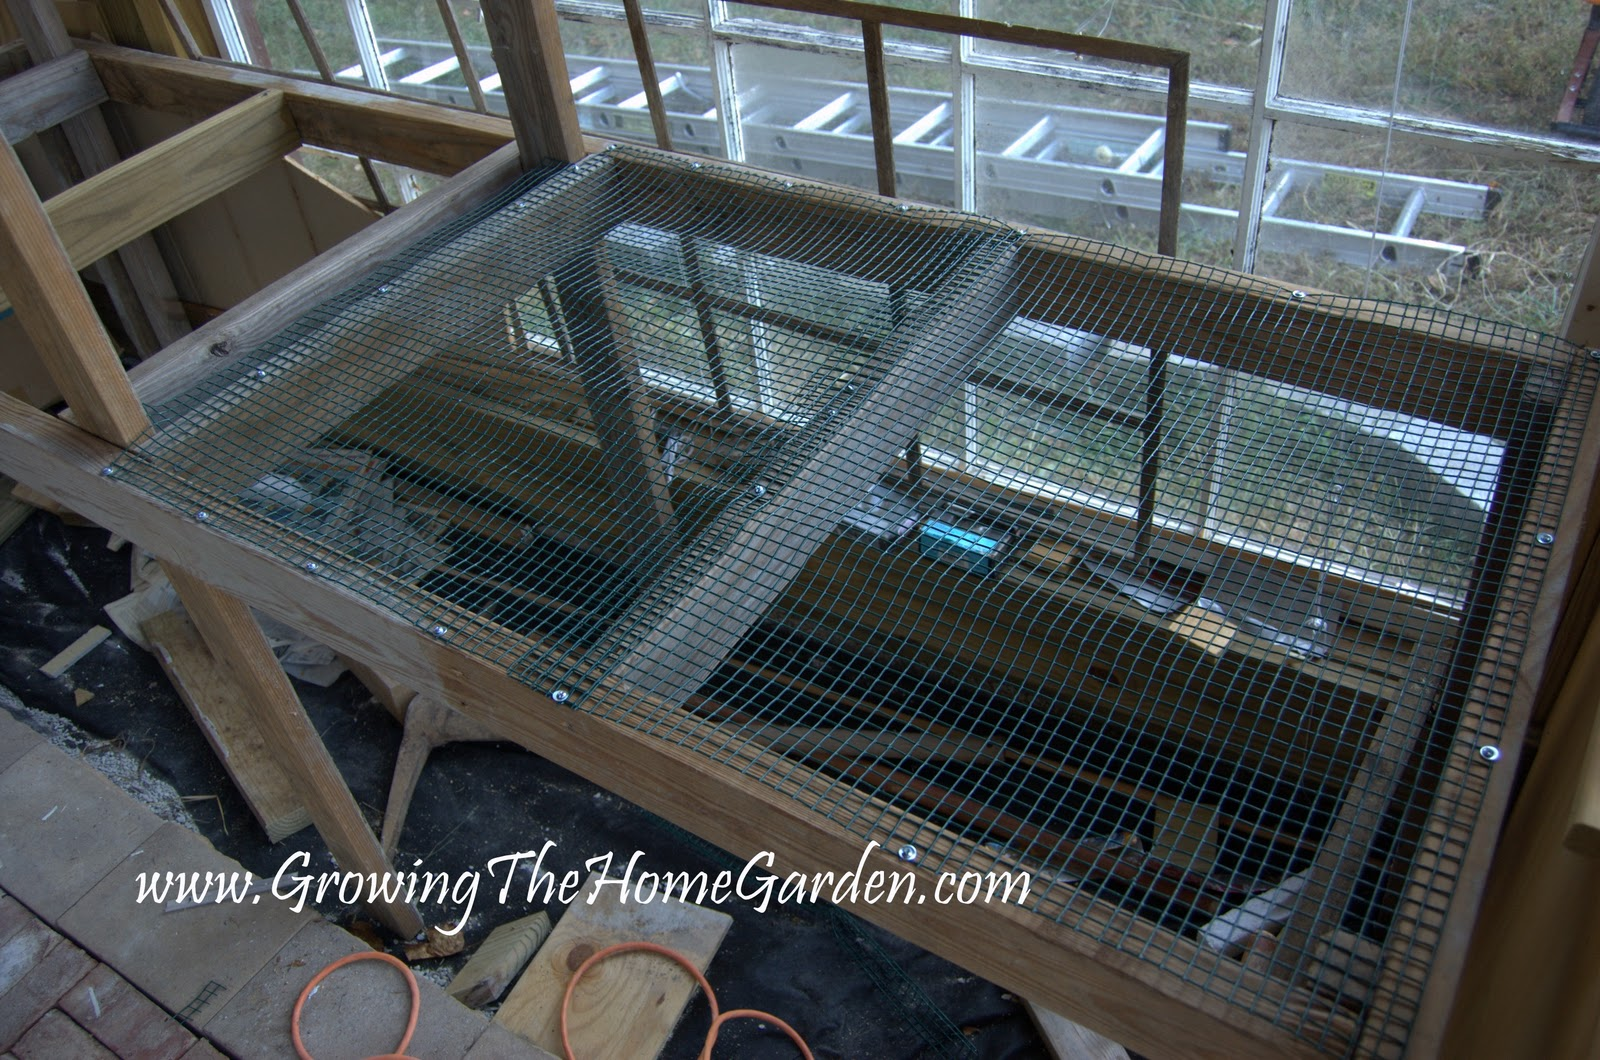 Woodworking greenhouse bench design ideas PDF Free Download